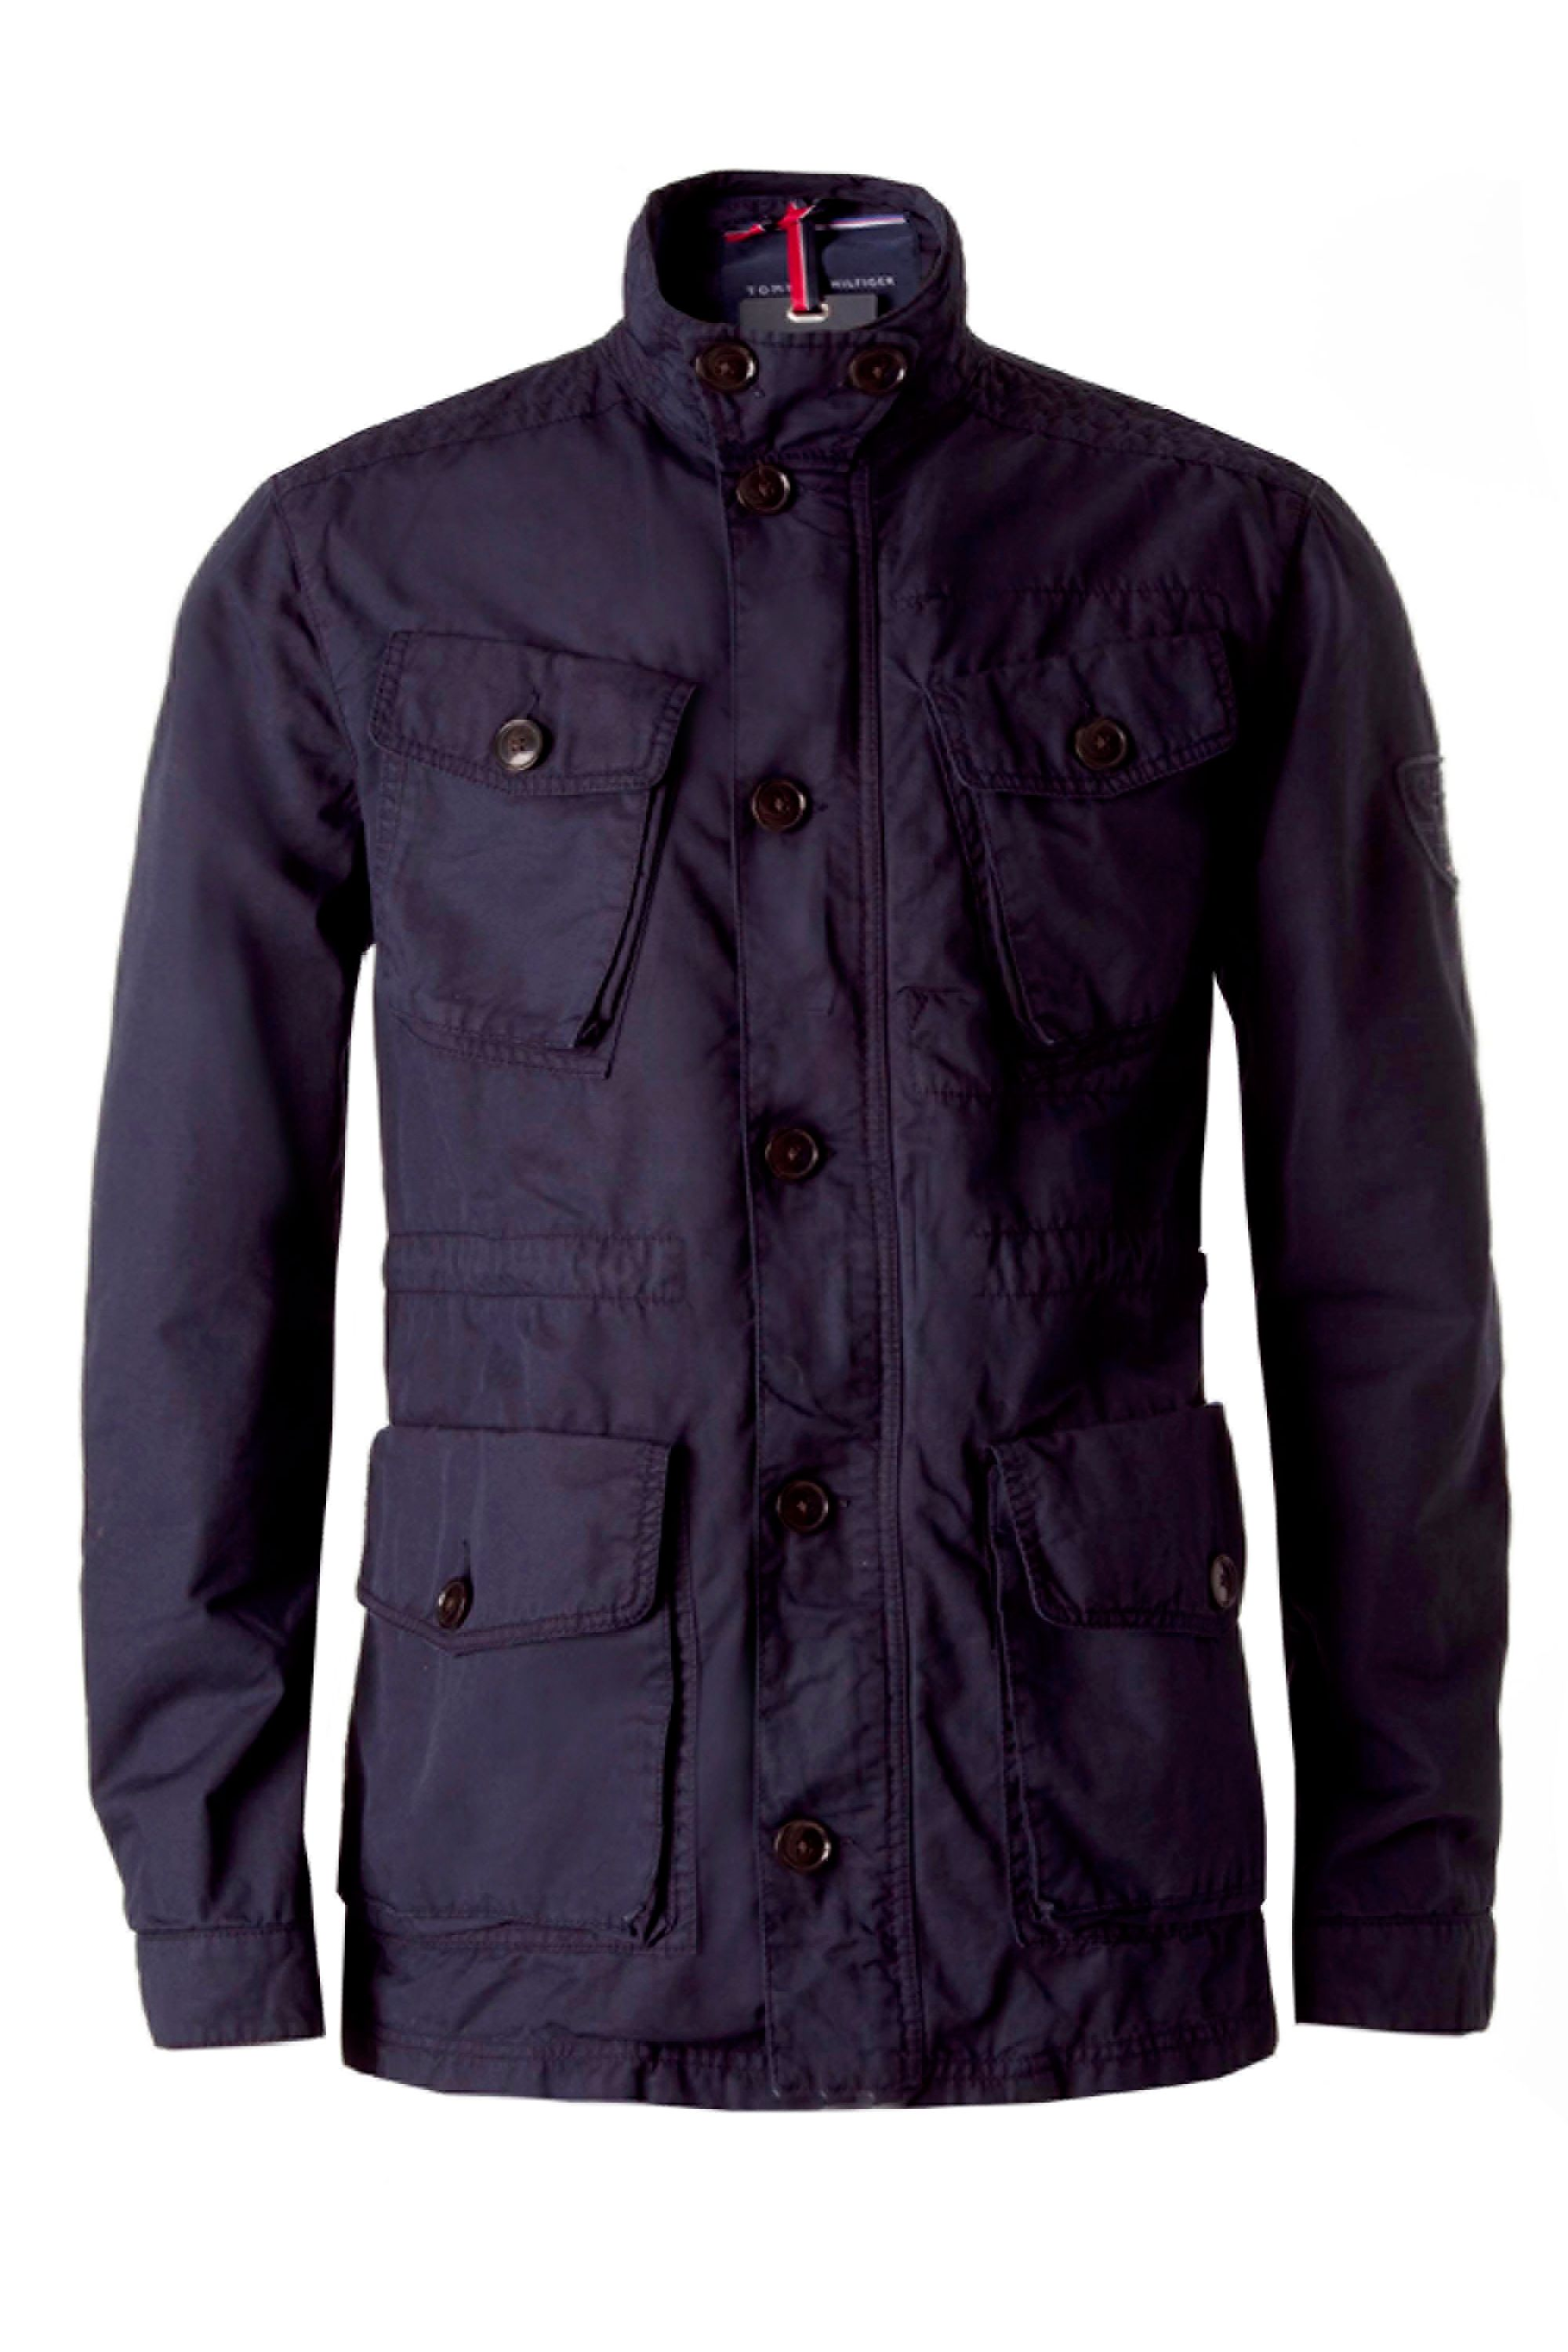 Rob airfield jacket